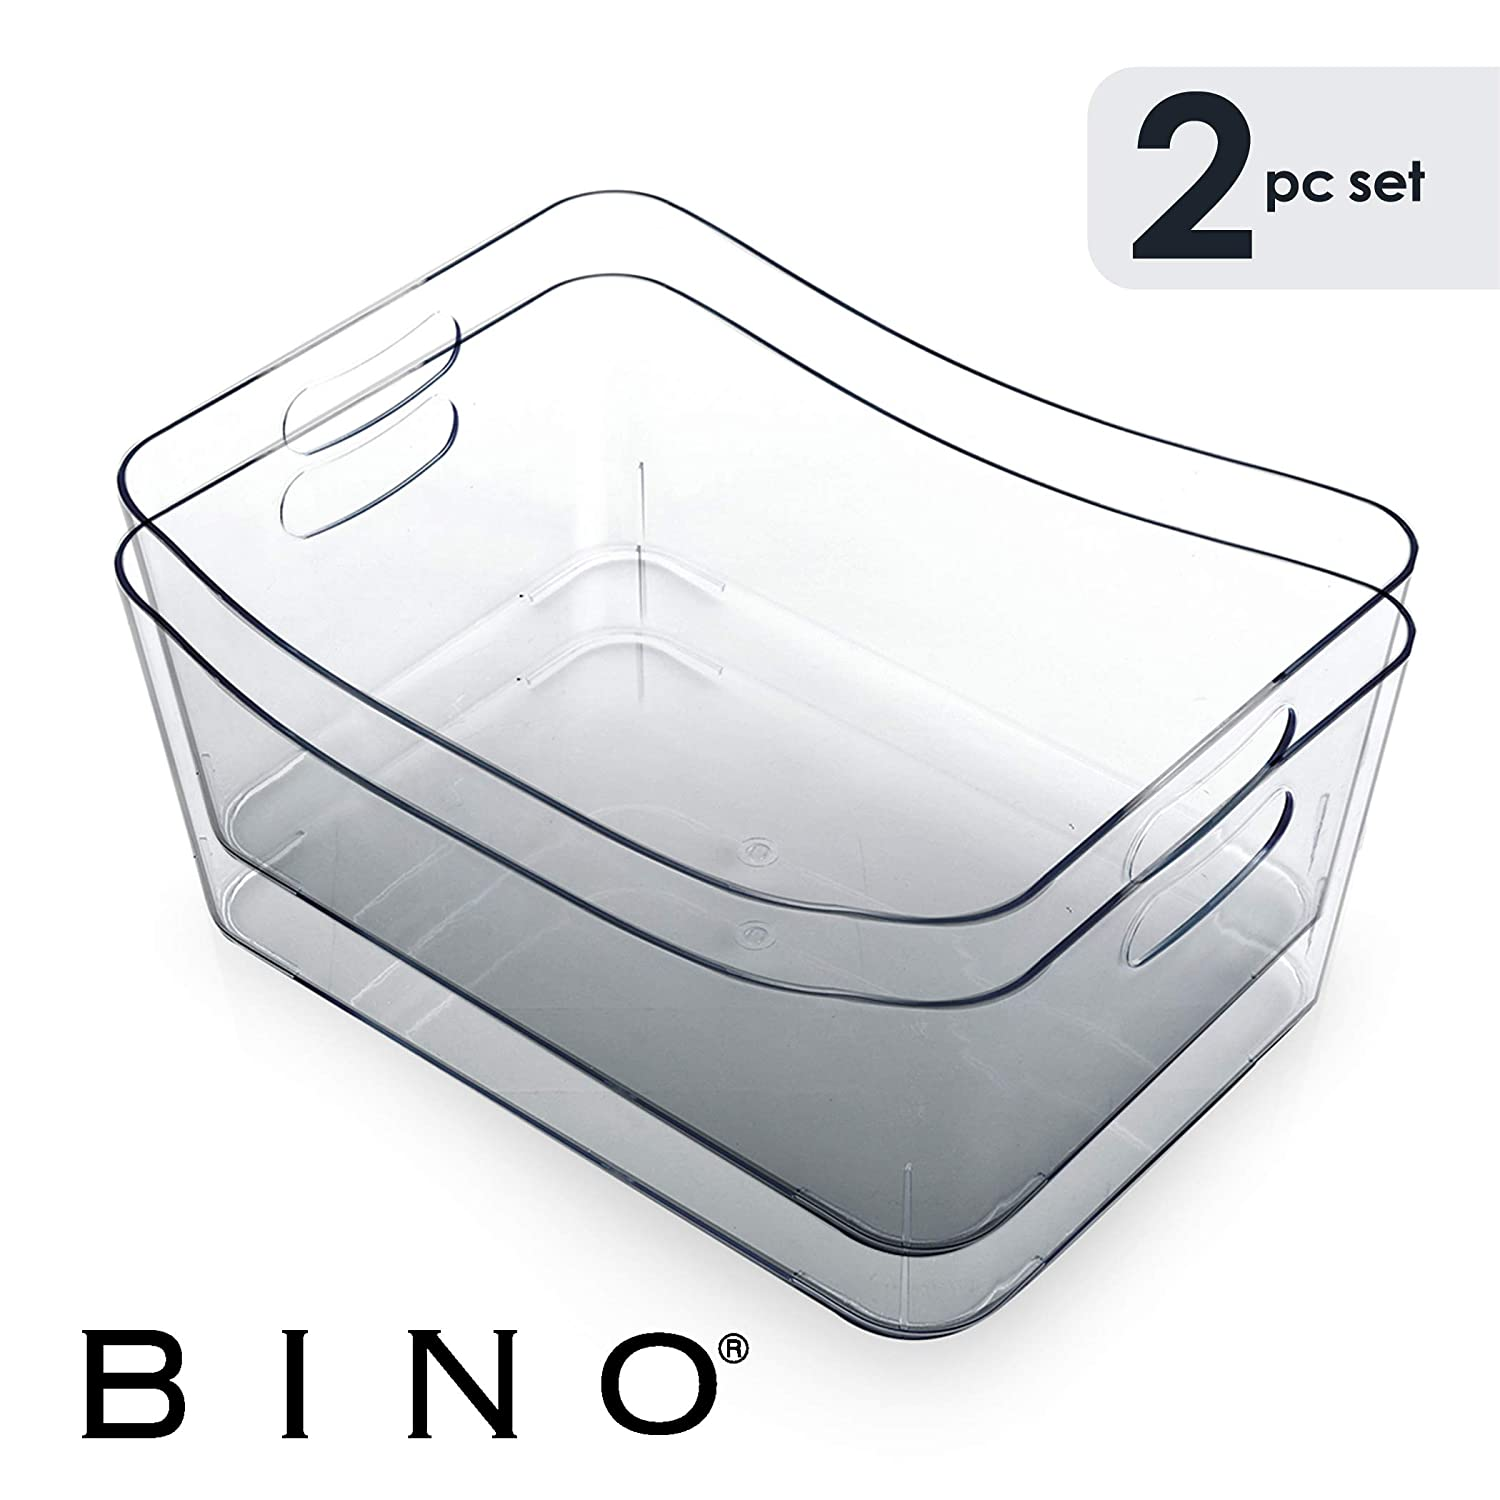 BINO Refrigerator, Freezer and Pantry Cabinet Storage Organizer Bin with Handles, Clear and Transparent Plastic Wide Nesting Food Container for Home and Kitchen - 2 Pack